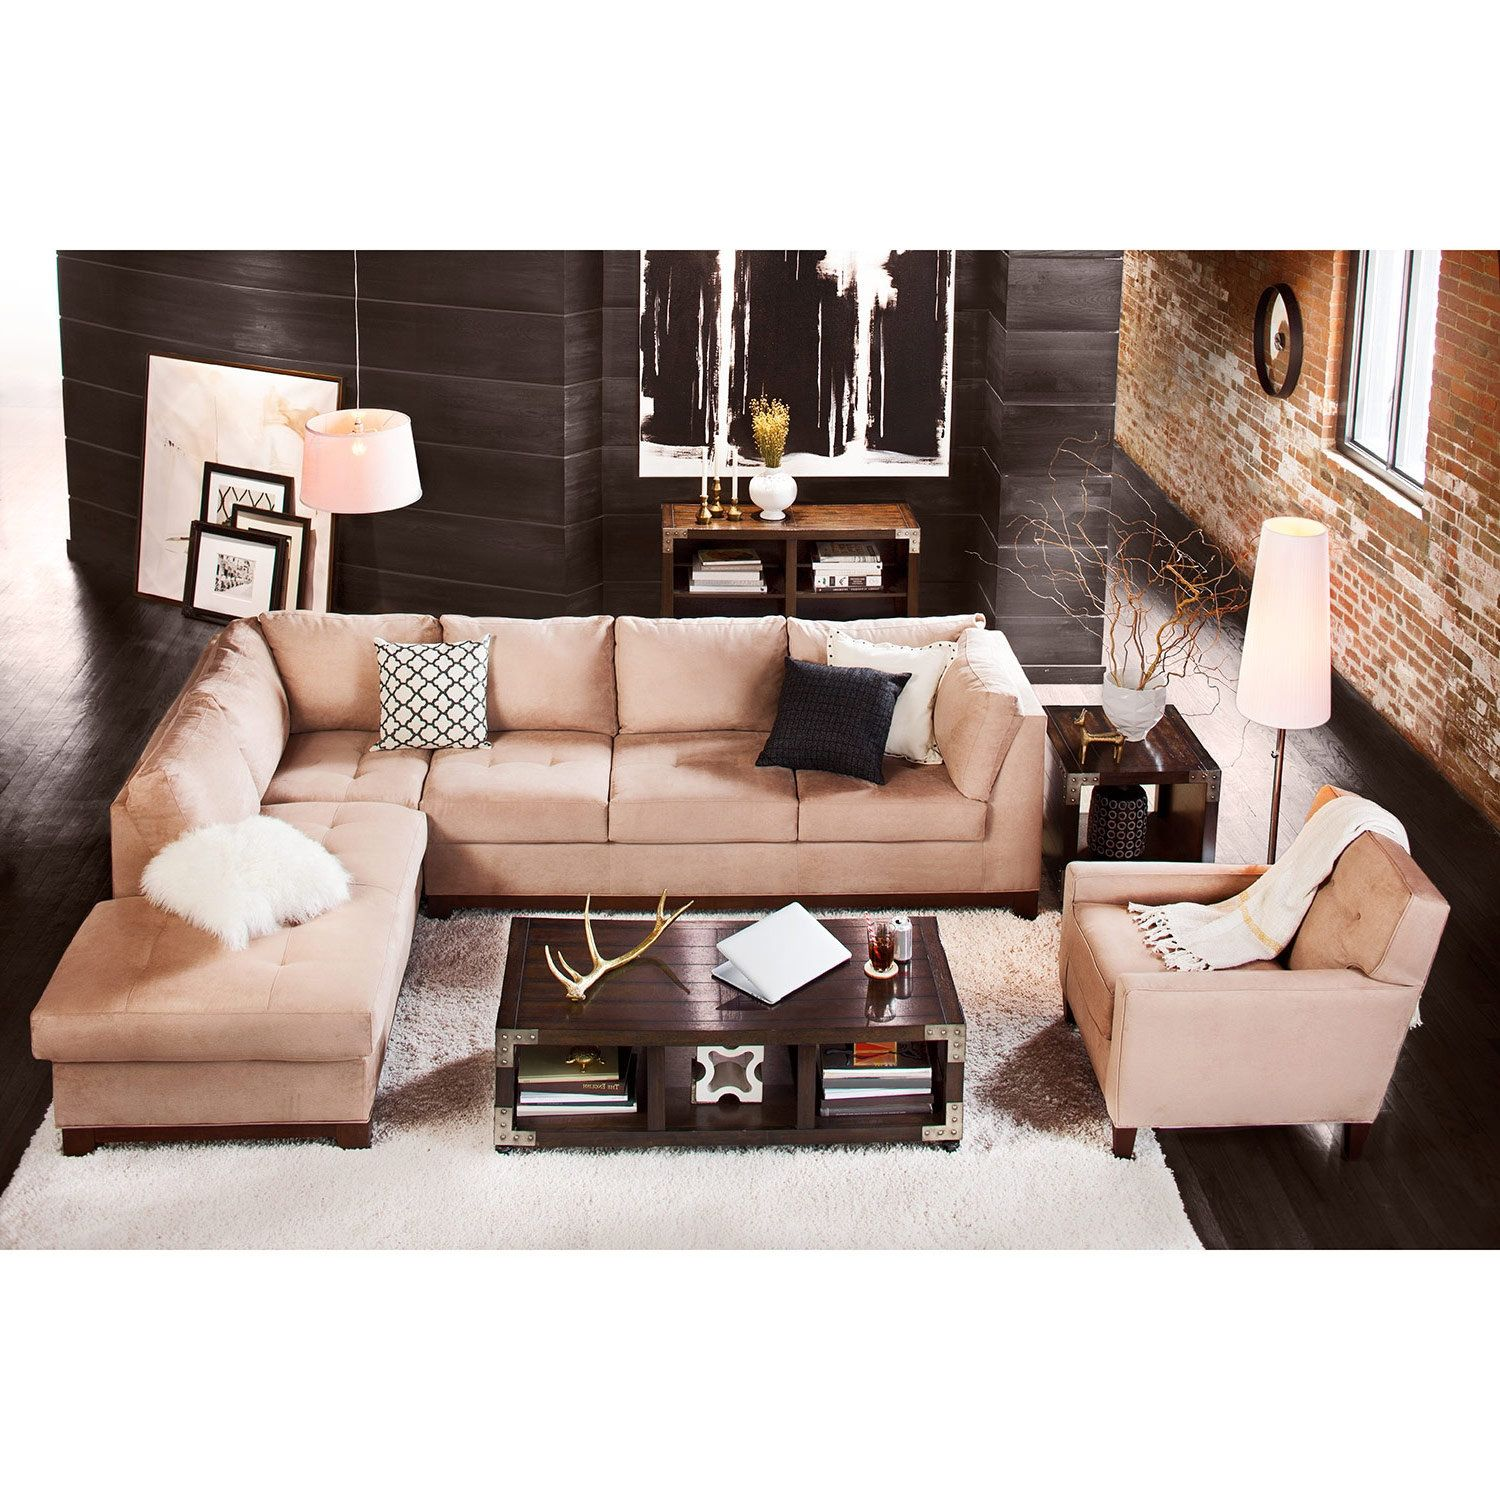 Marvelous Soho 2 Piece Sectional With Chaise Houseeee Value City Onthecornerstone Fun Painted Chair Ideas Images Onthecornerstoneorg